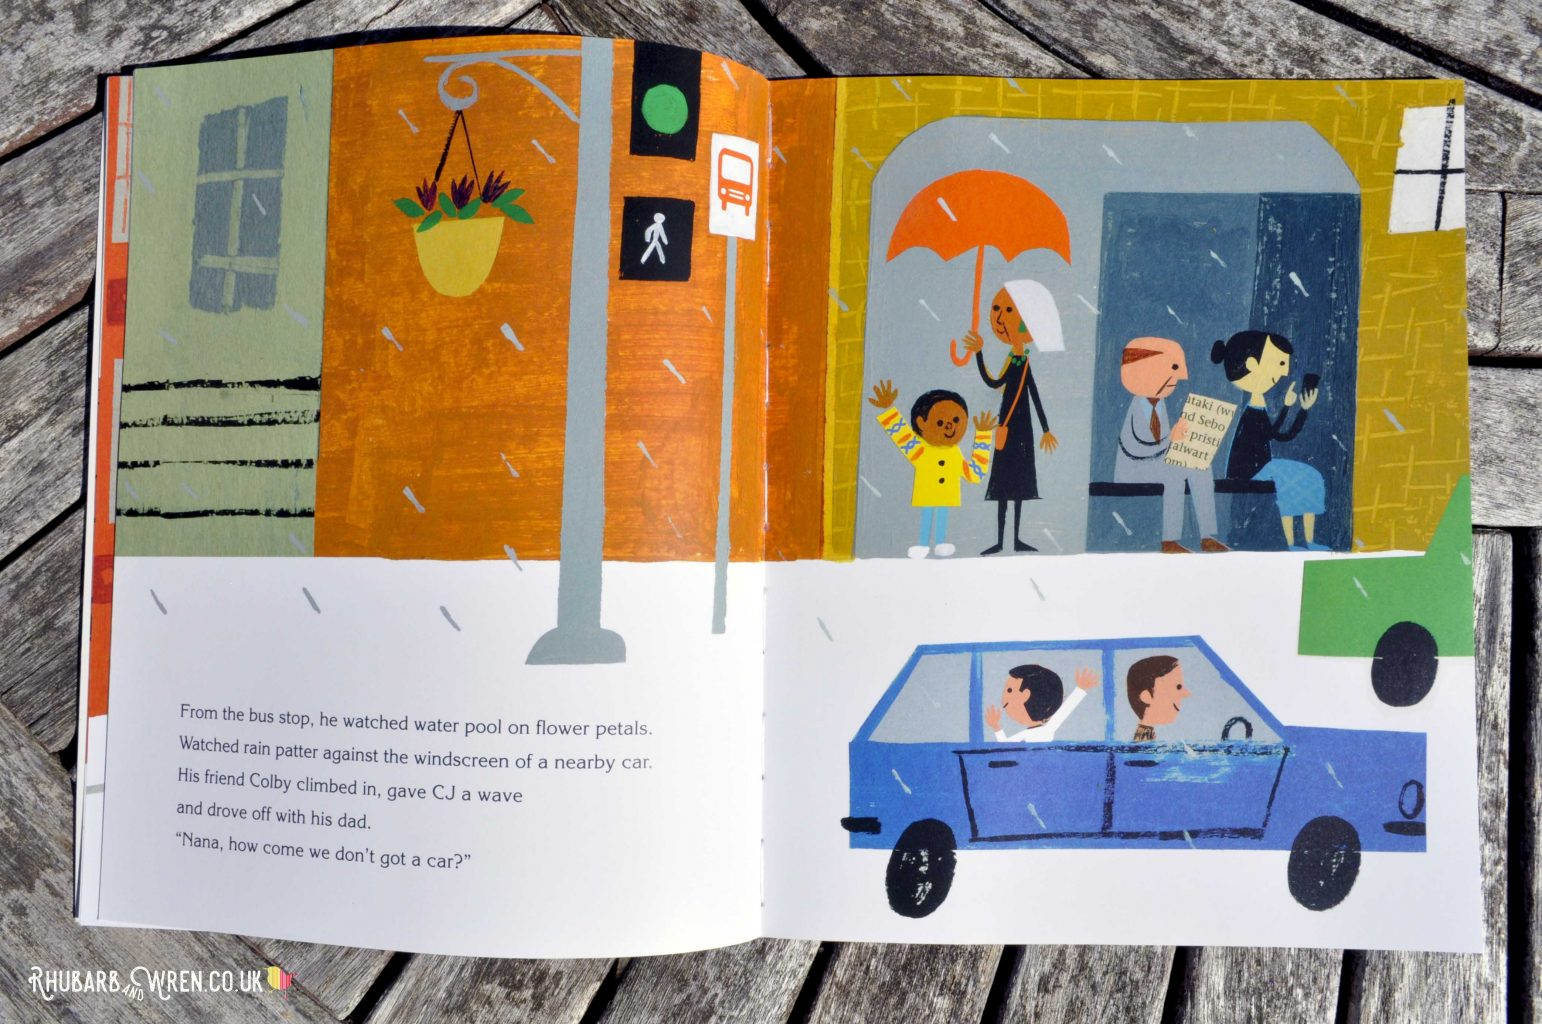 CJ and Nana wait at the bus stop in a page from Last Stop on Market Street - picture book by Matt de la Pena and Christian Robinson